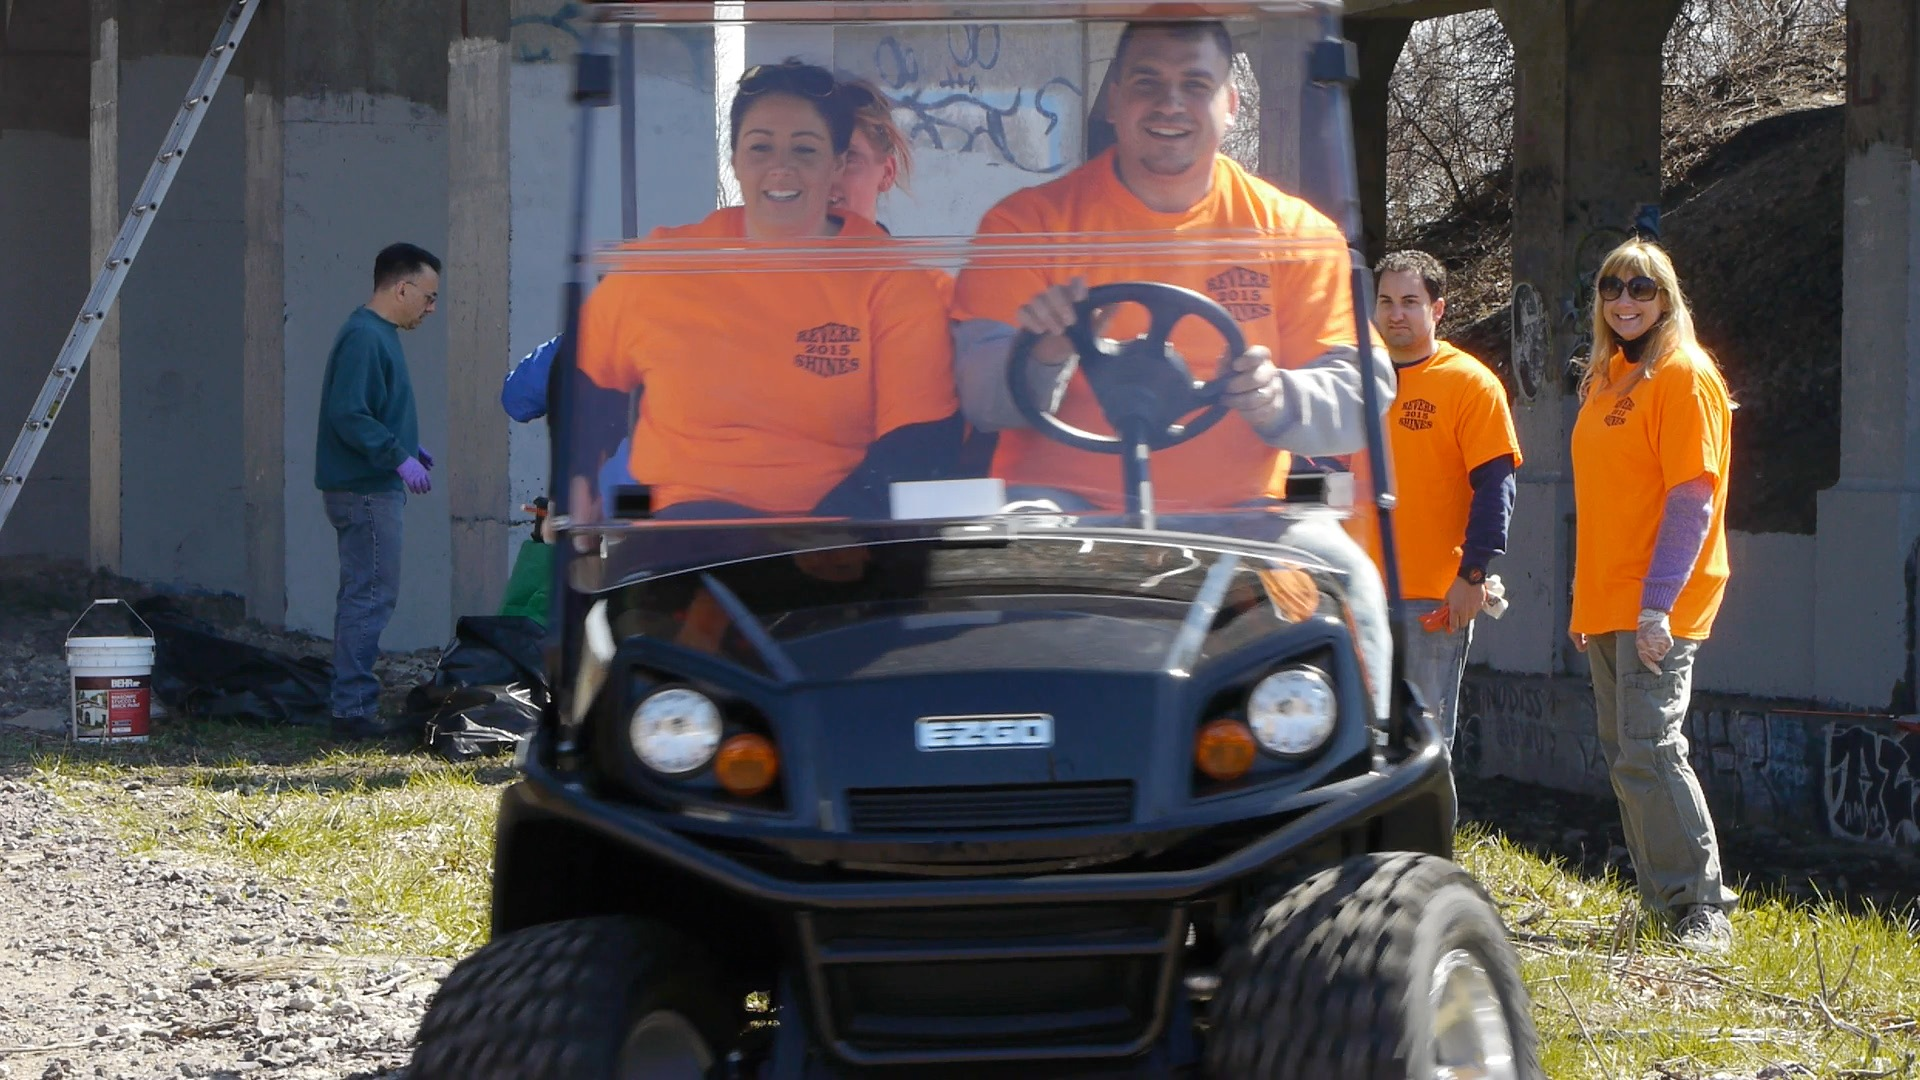 Revere volunteers in a golf cart at last year's clean up event in Revere.